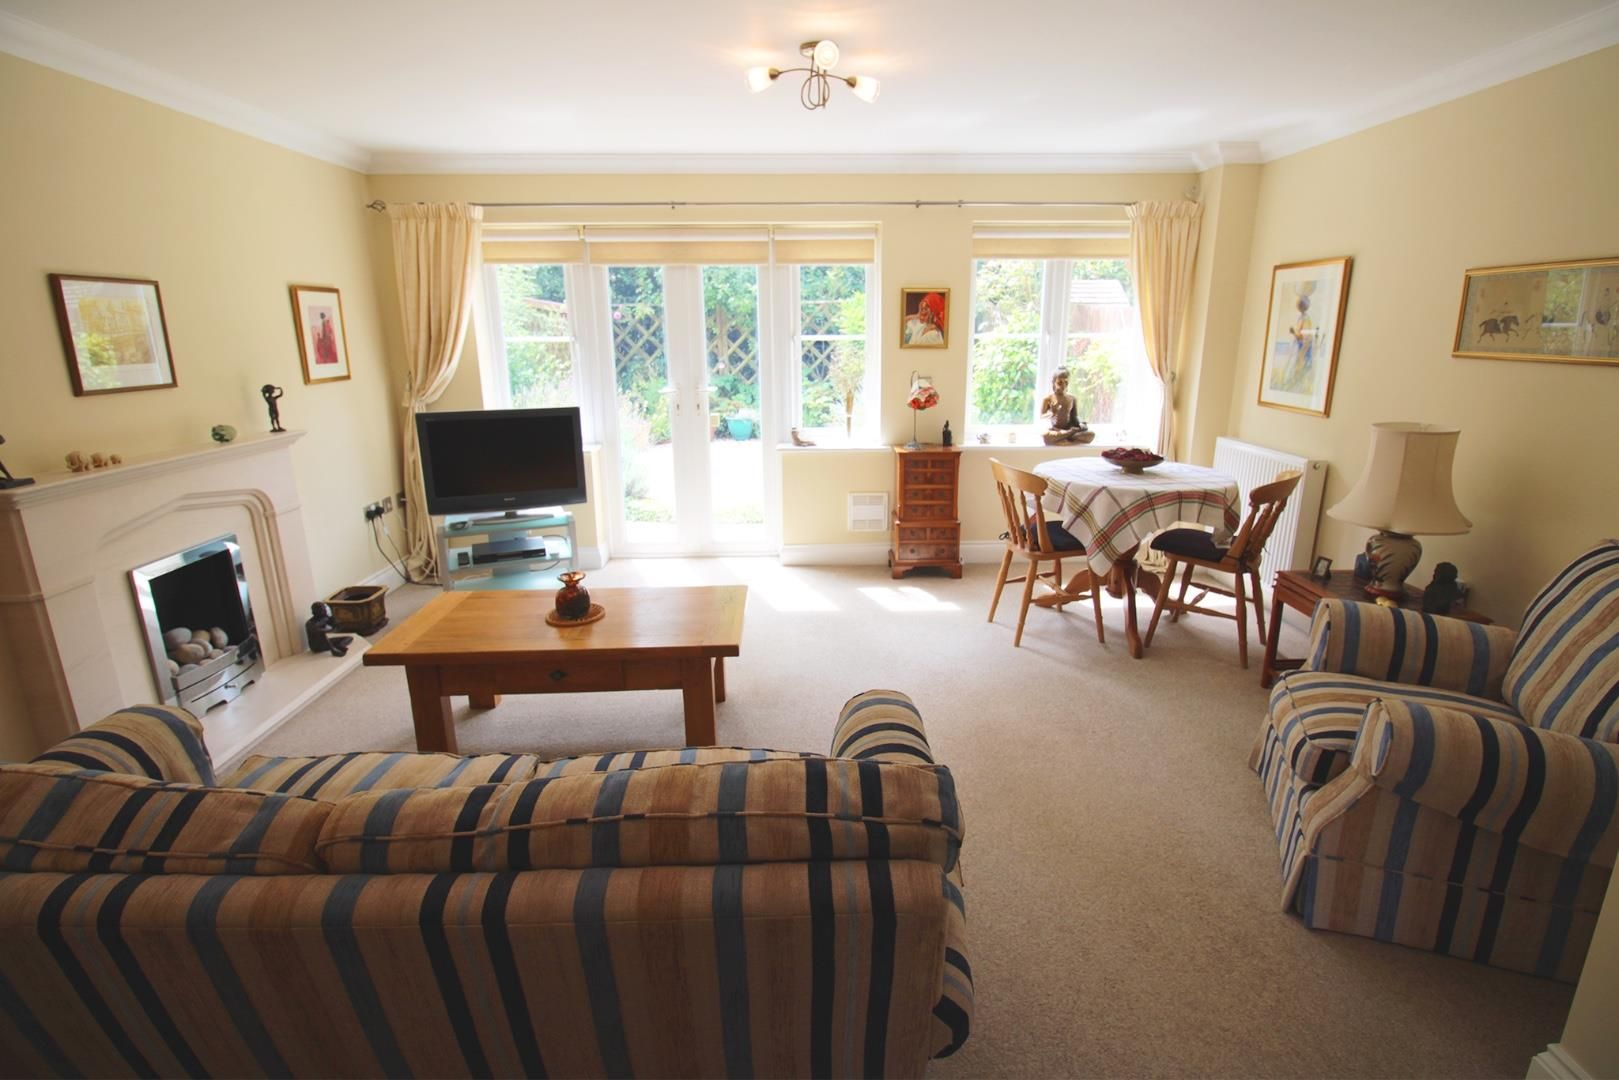 3 bed semi-detached for sale in Warfield  - Property Image 2